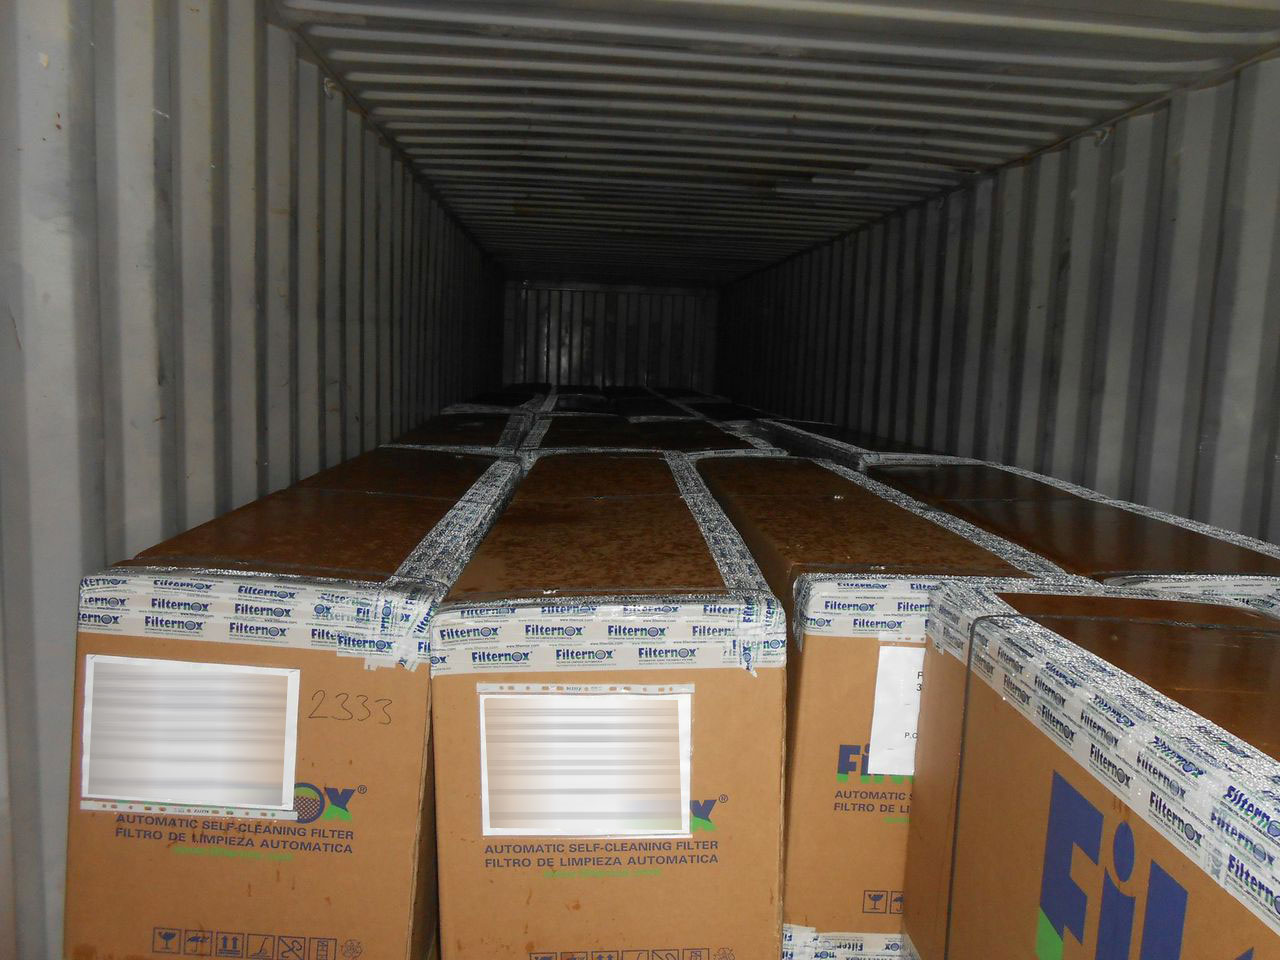 water-filter-filternox-shipping-to-spain-p2-2